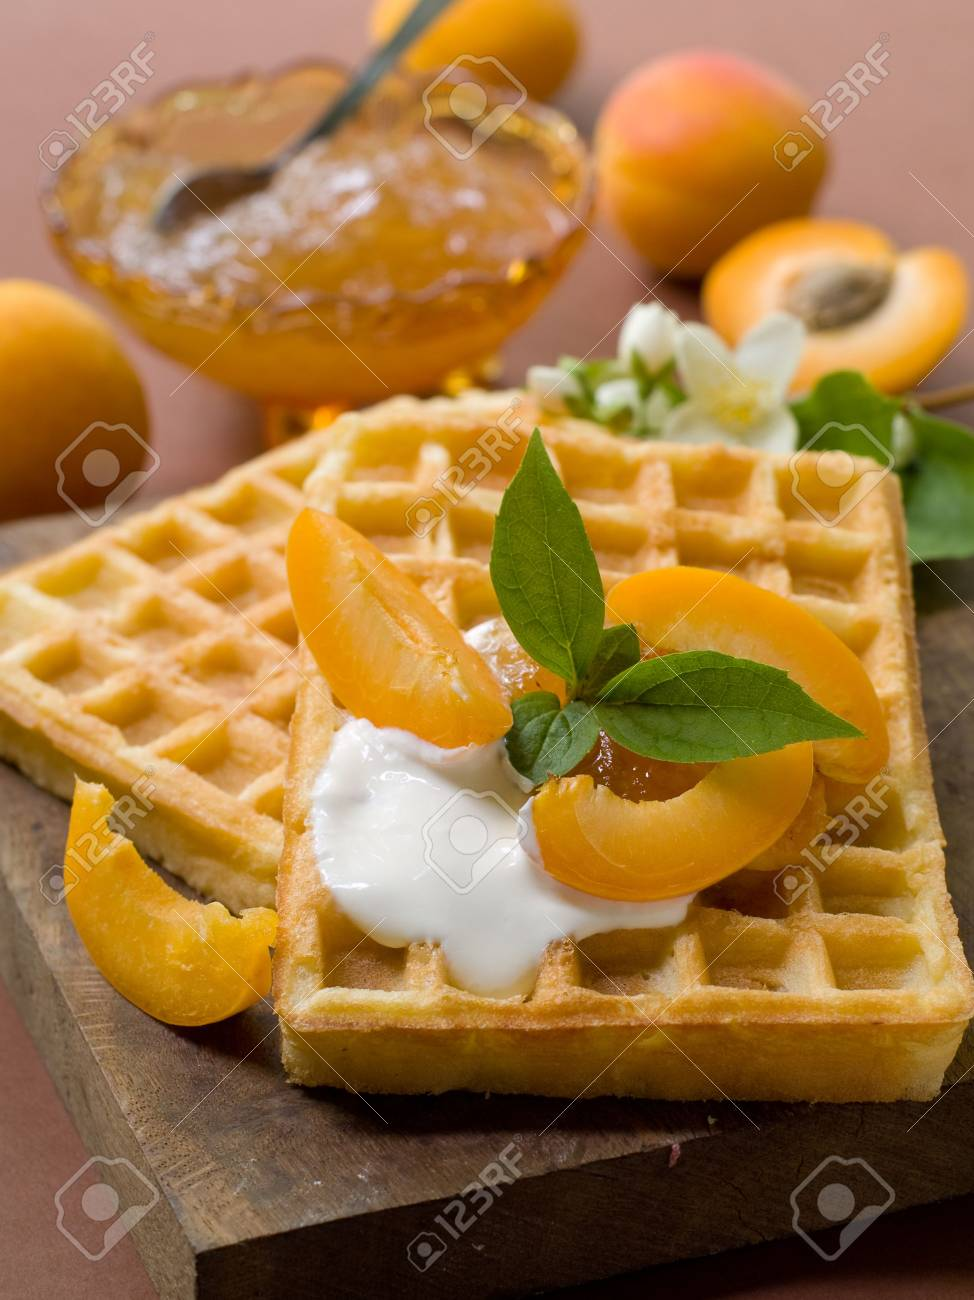 Wafers with apricot jam and cream for a breakfast Stock Photo - 7282437